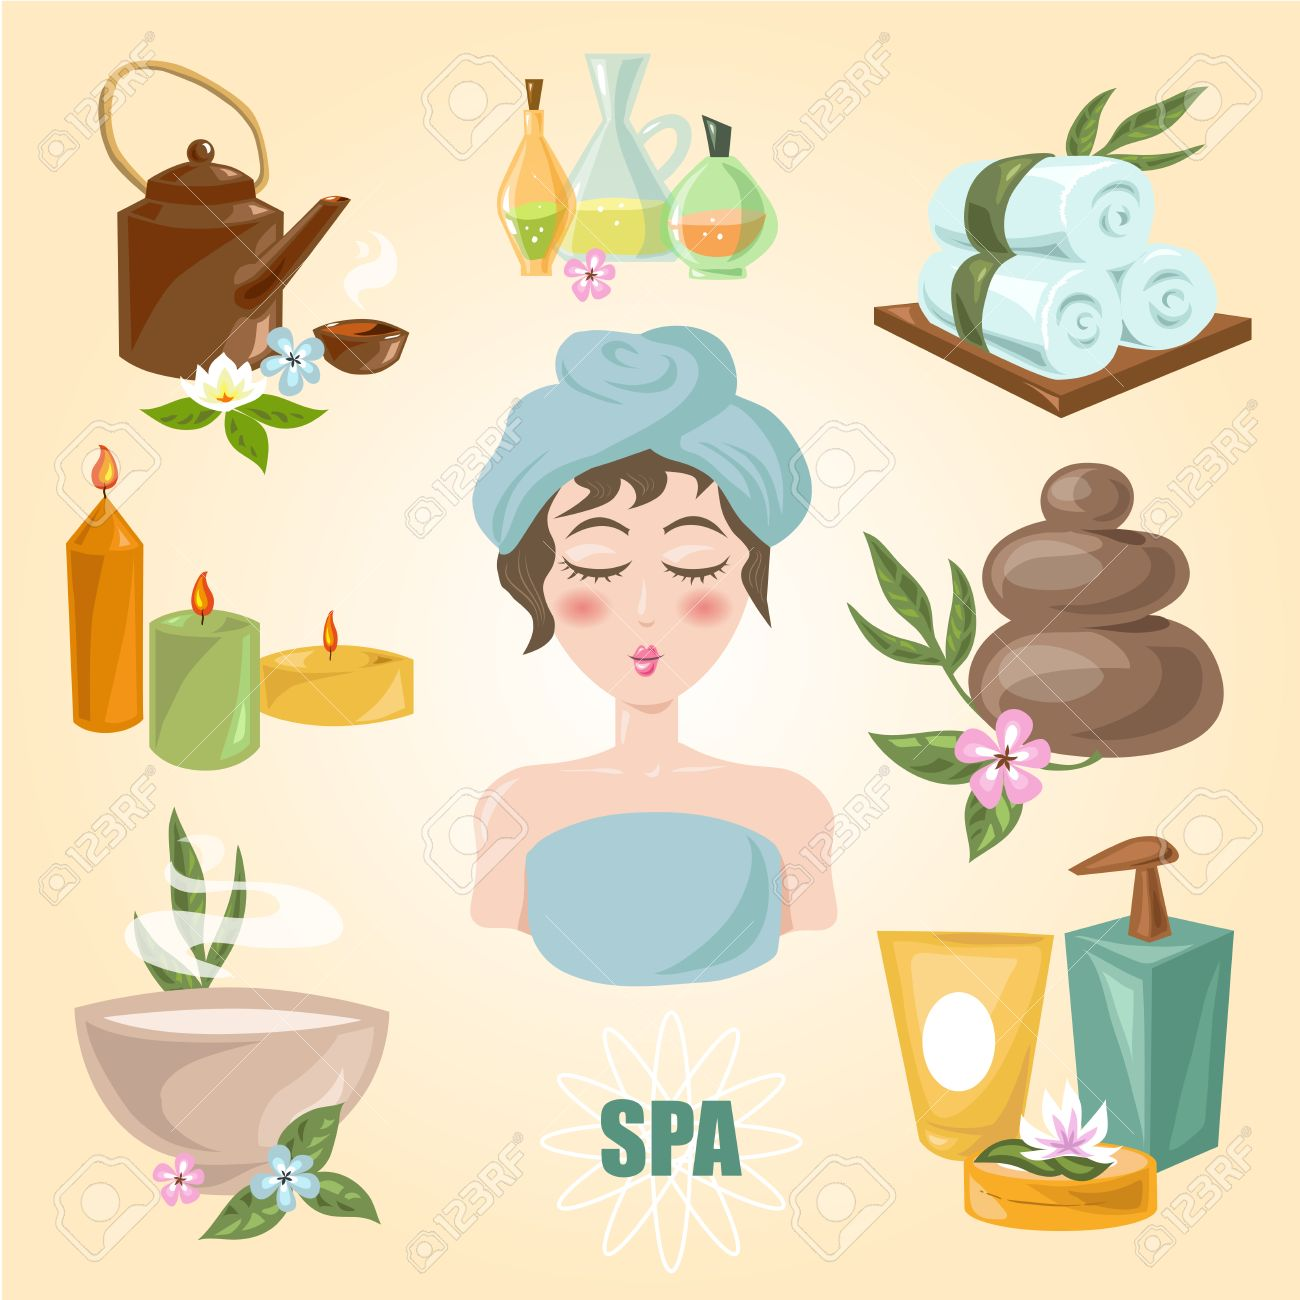 Spa Symbols Cartoon Set Spa Emblems For Beauty Industry Care Royalty Free Cliparts Vectors And Stock Illustration Image 69565224